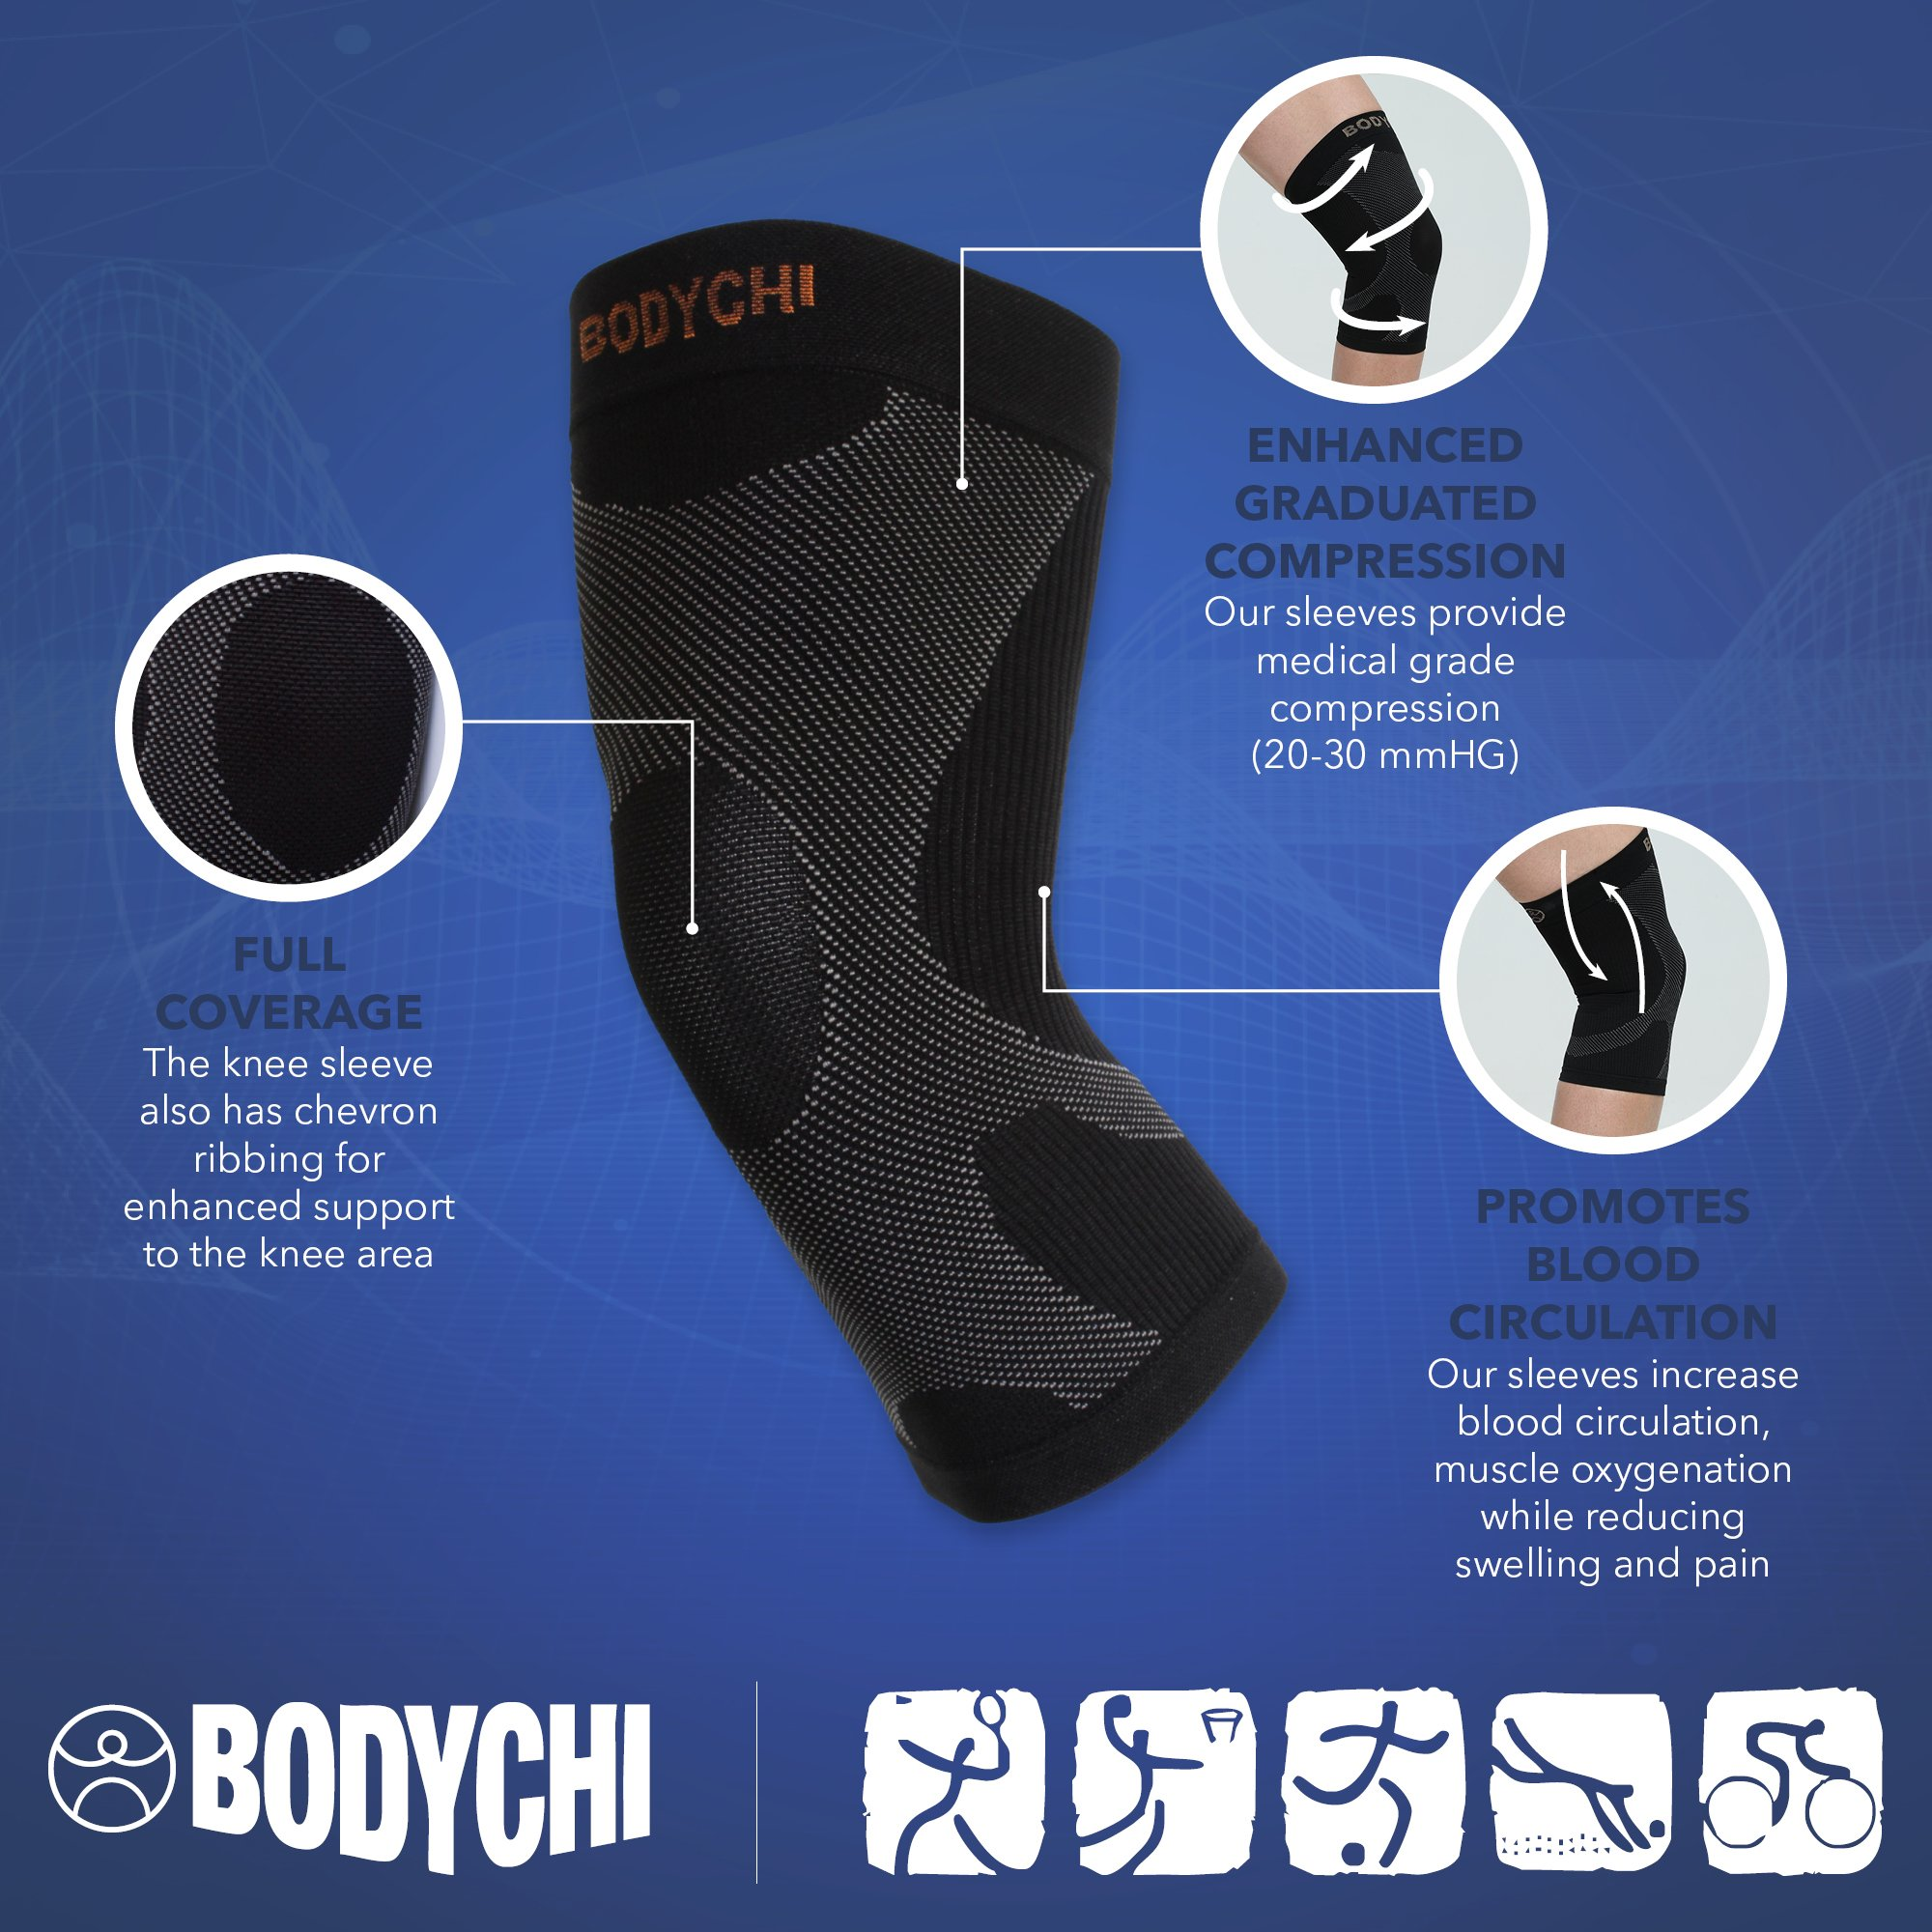 BODYCHI Men and Women Seamless 20-30 mmHg Compression Knee Support Sleeve for Joint Protection and Support for Running, Sports, Knee Pain Relief, Knee Sleeve, Comes in a Pair, Large by BODYCHI (Image #3)